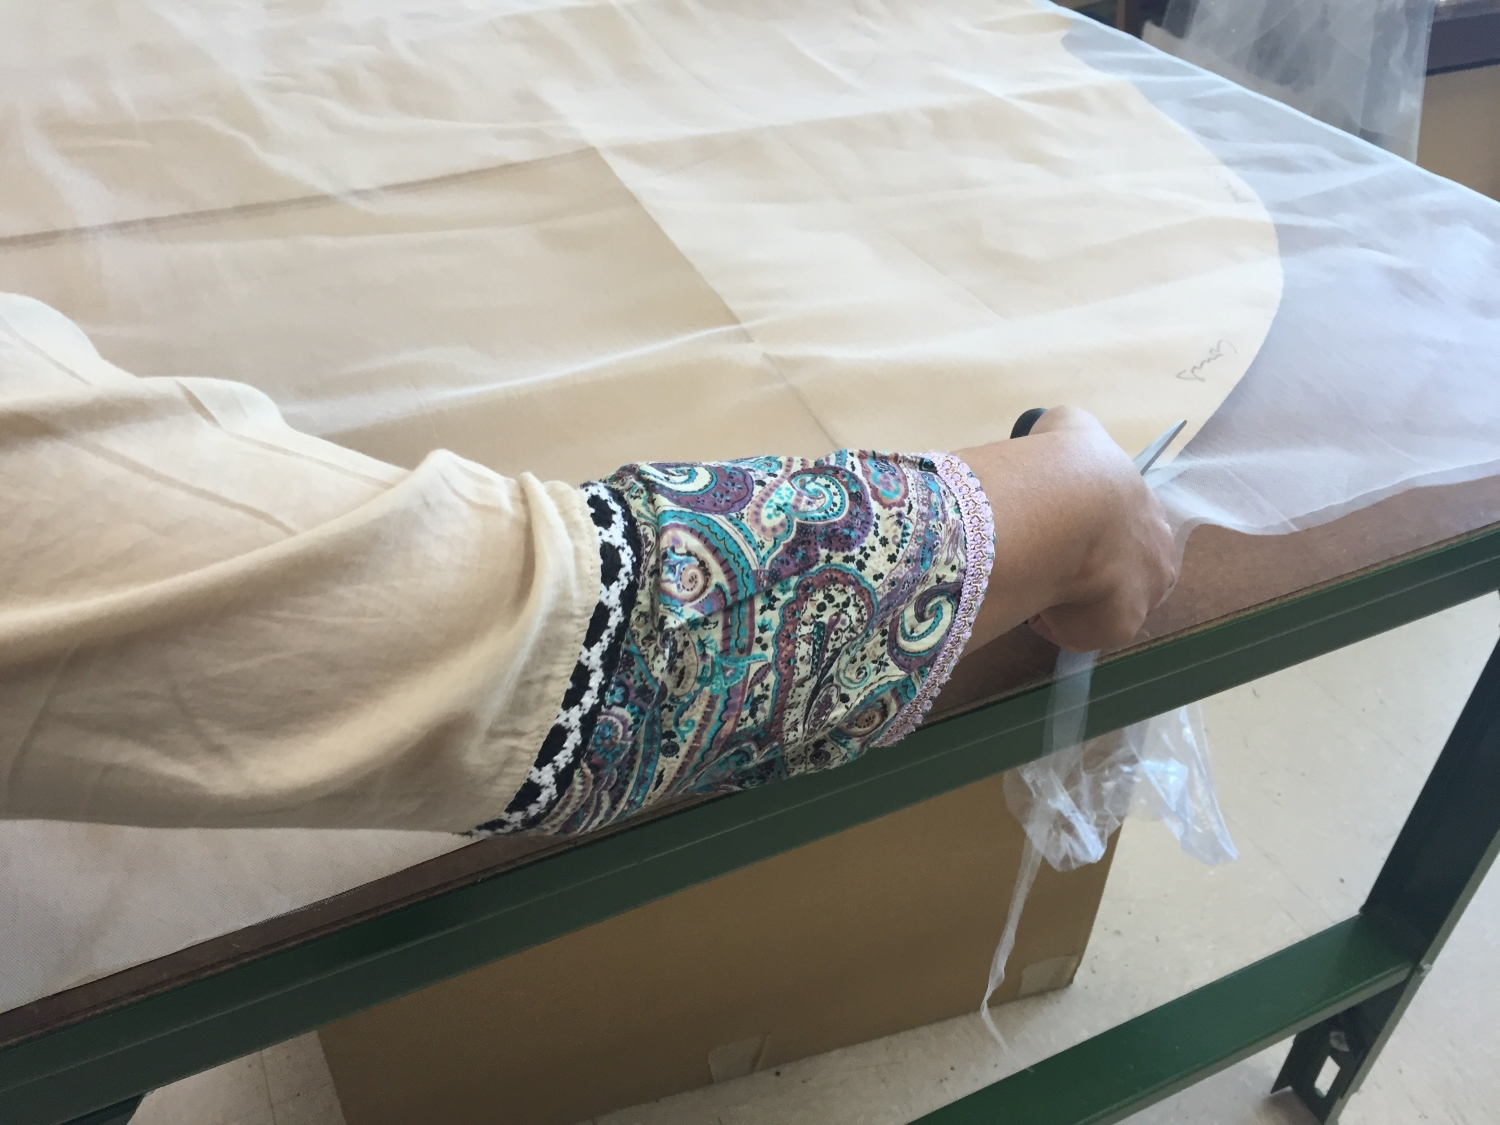 CUTTING  - The first step in shaping the material requires a steady hand to create the base upon which everything else will be added to create a beautiful veil